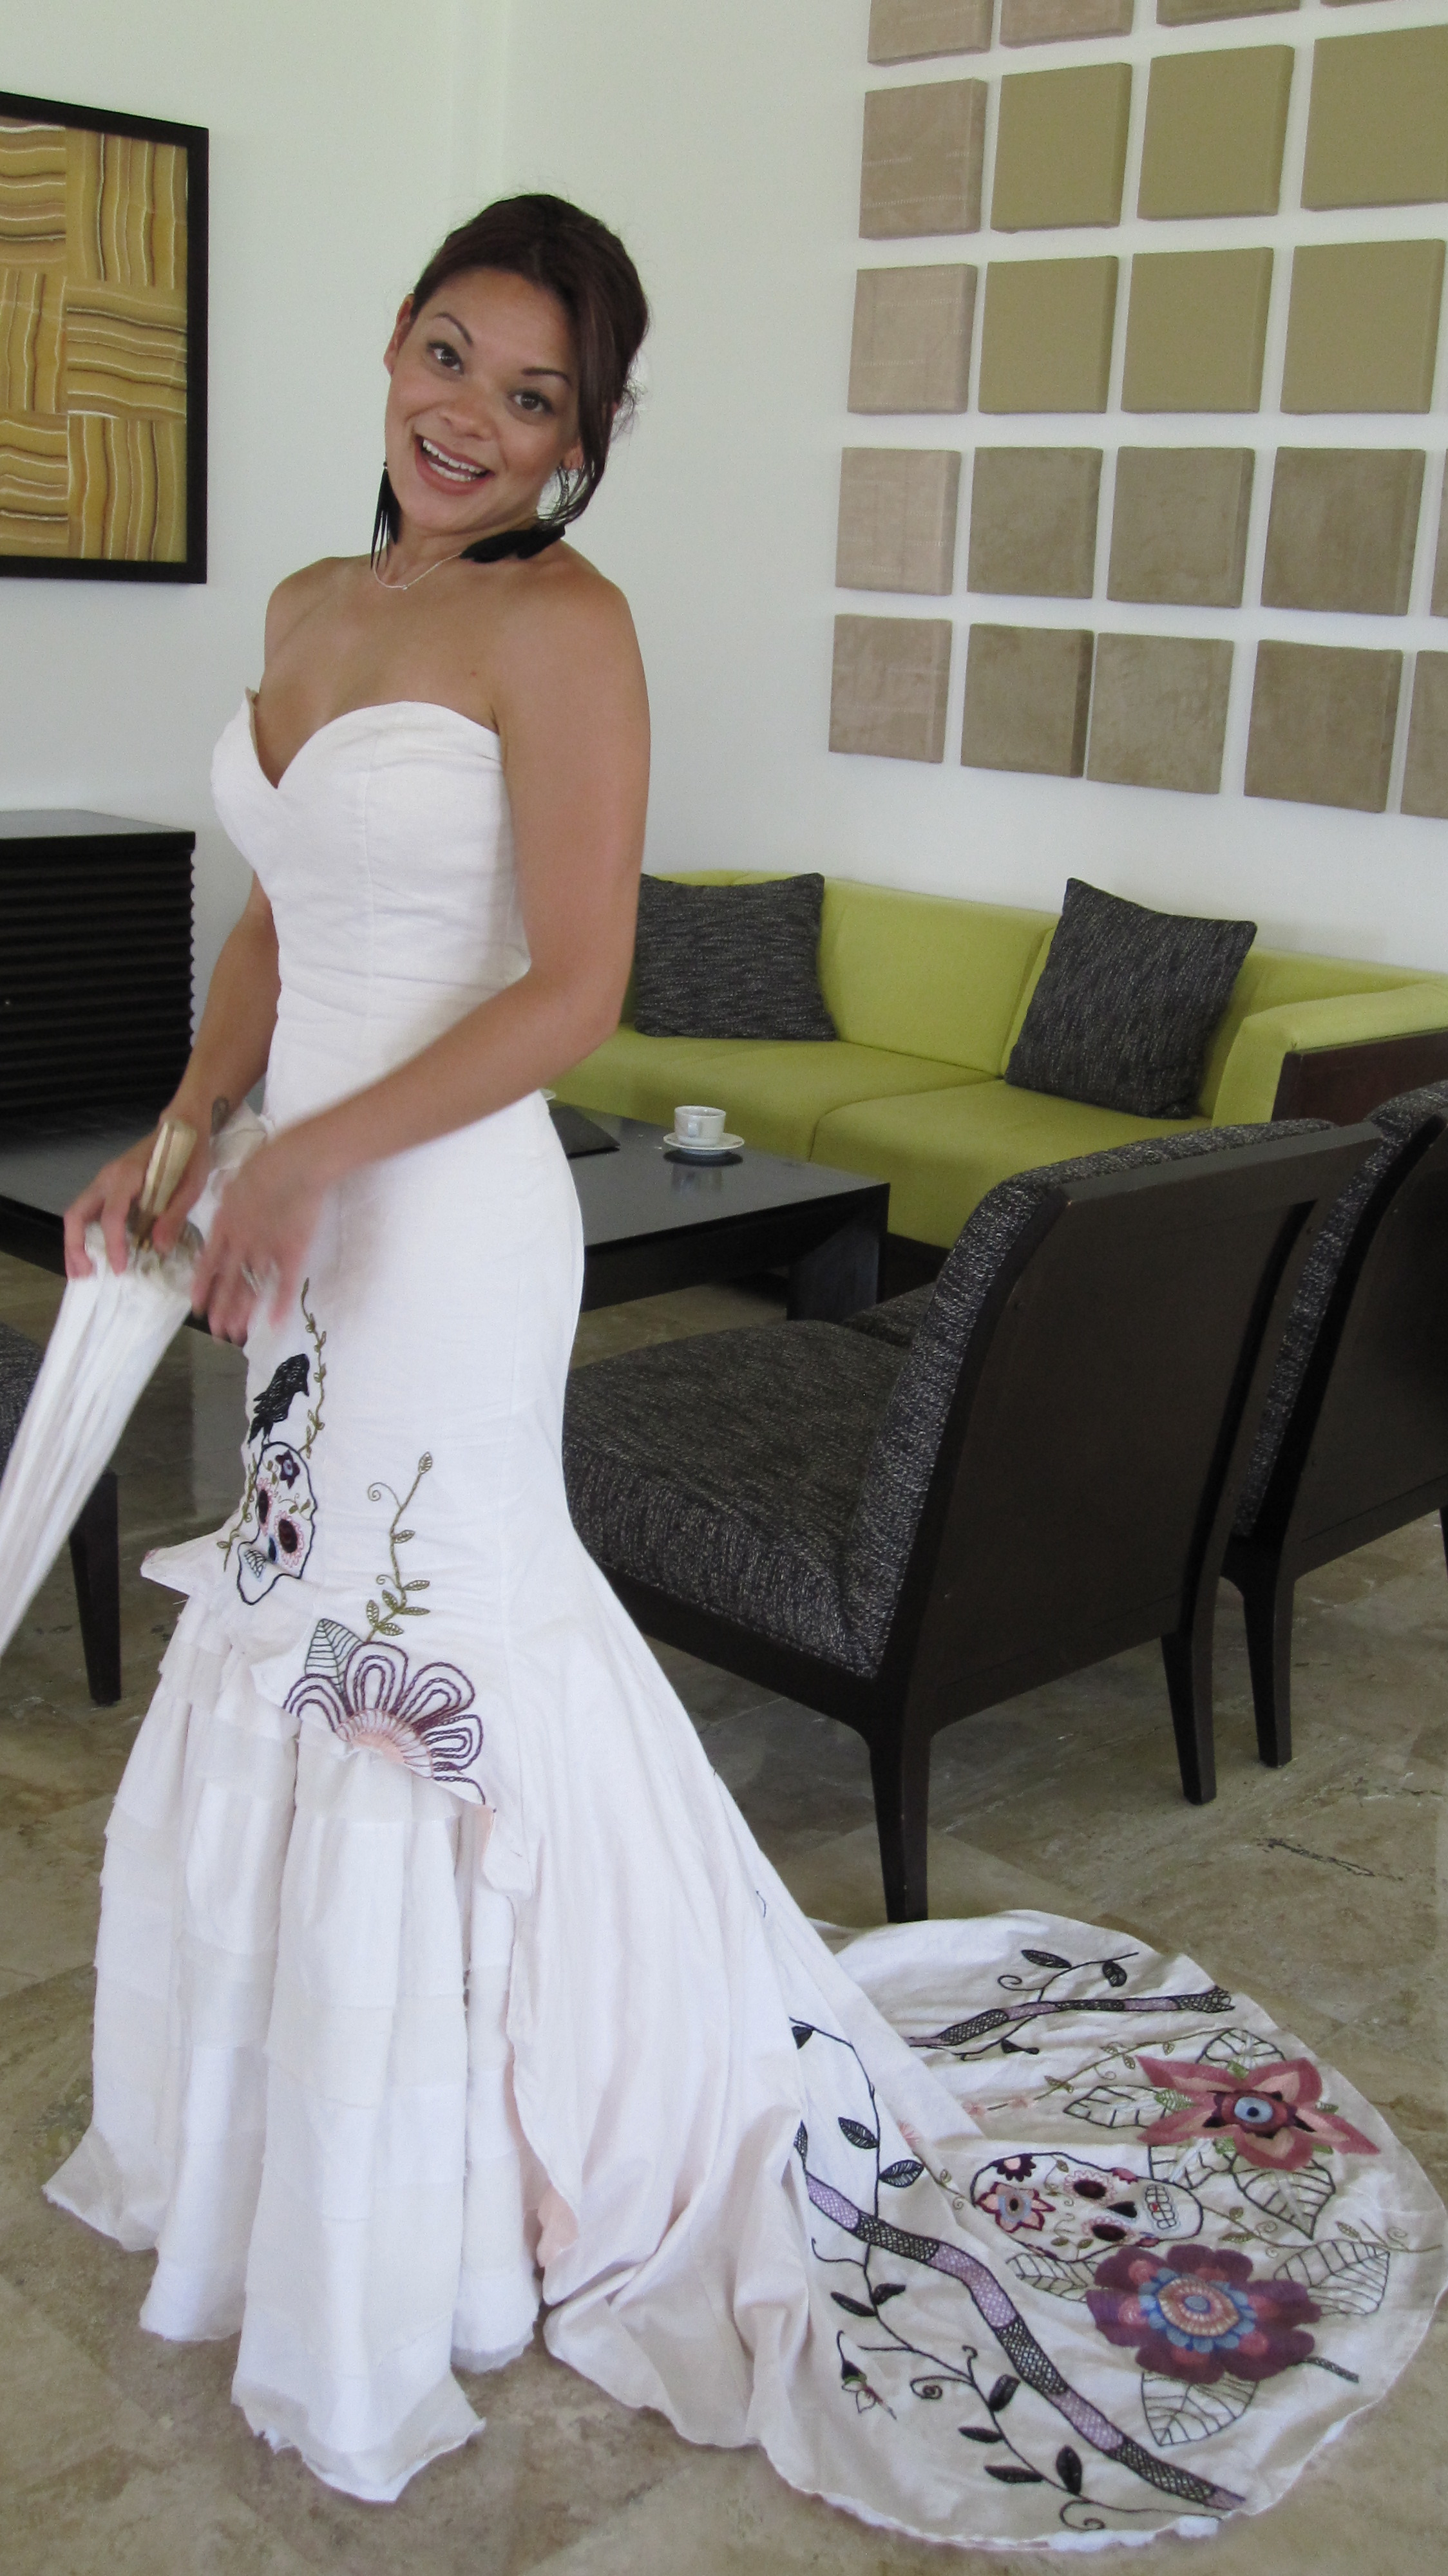 Jazmin 39 S Muy Caliente Wedding Dress Inspired By A Pop